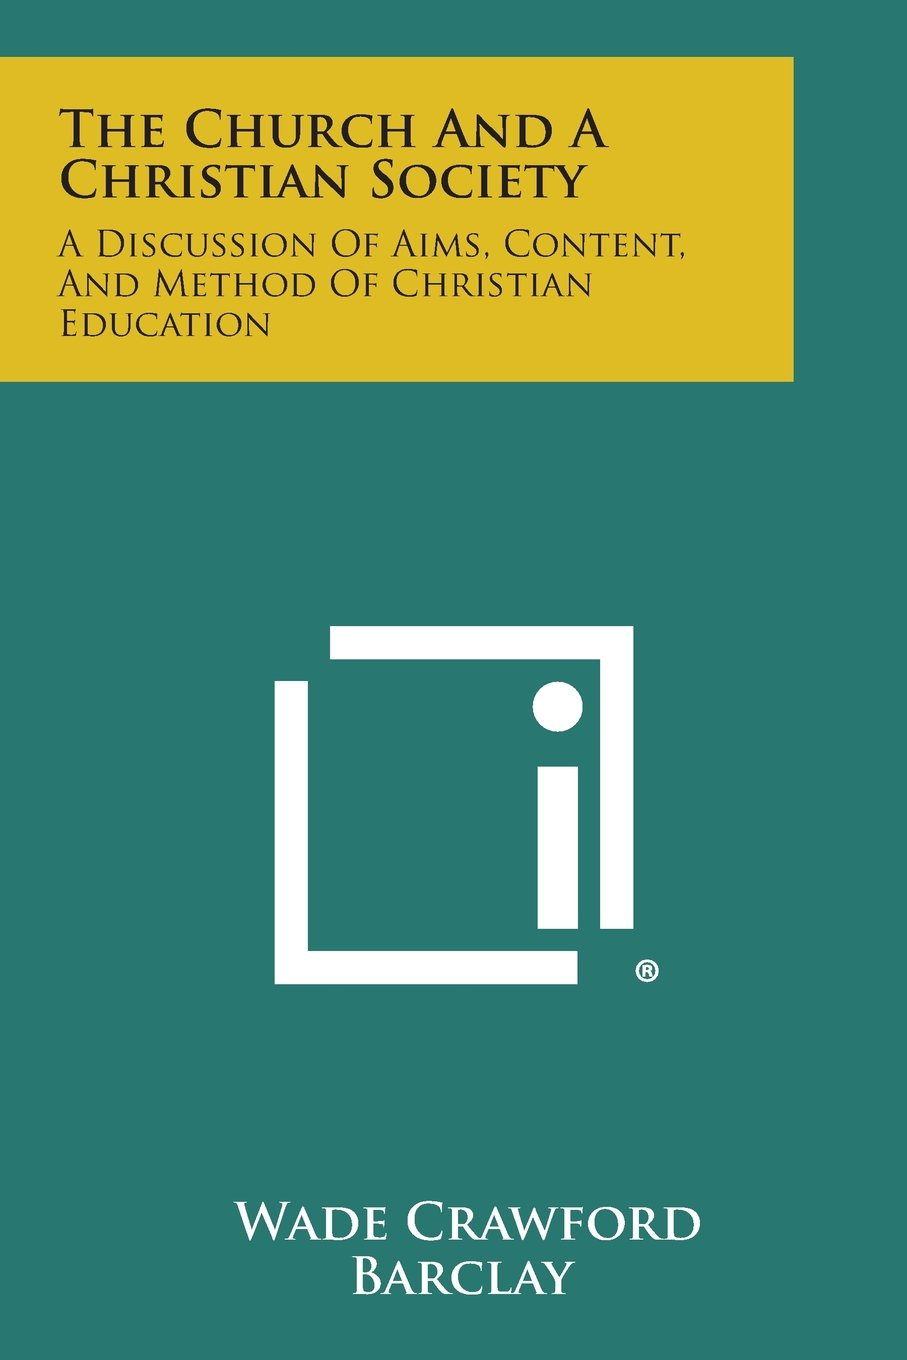 Download The Church and a Christian Society: A Discussion of Aims, Content, and Method of Christian Education pdf